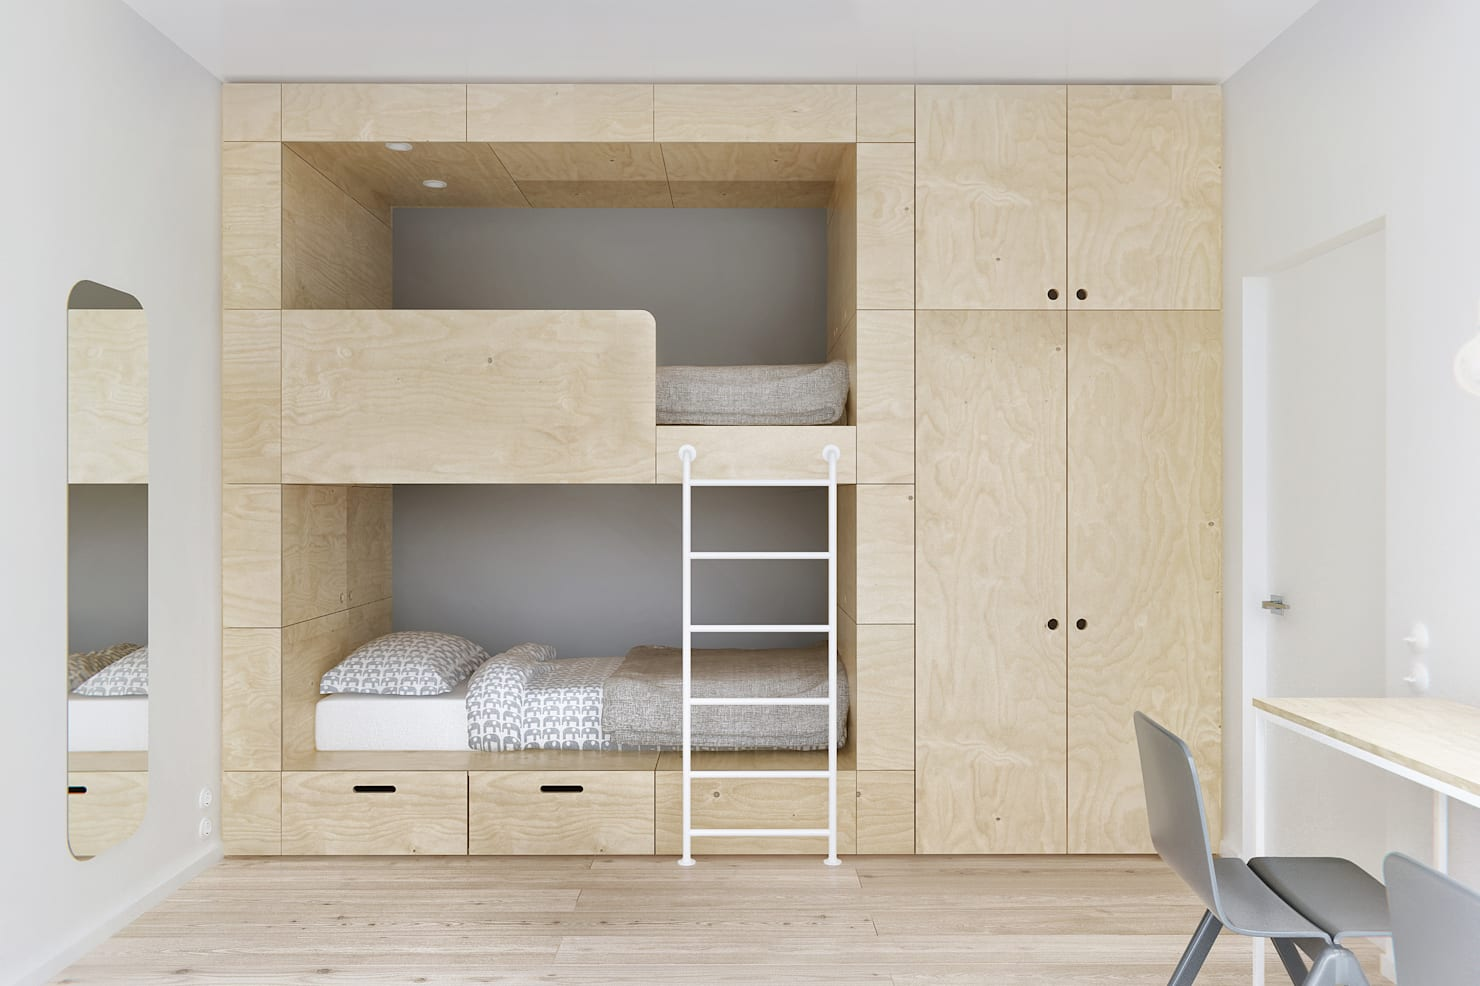 9 easy ways to free up space at home